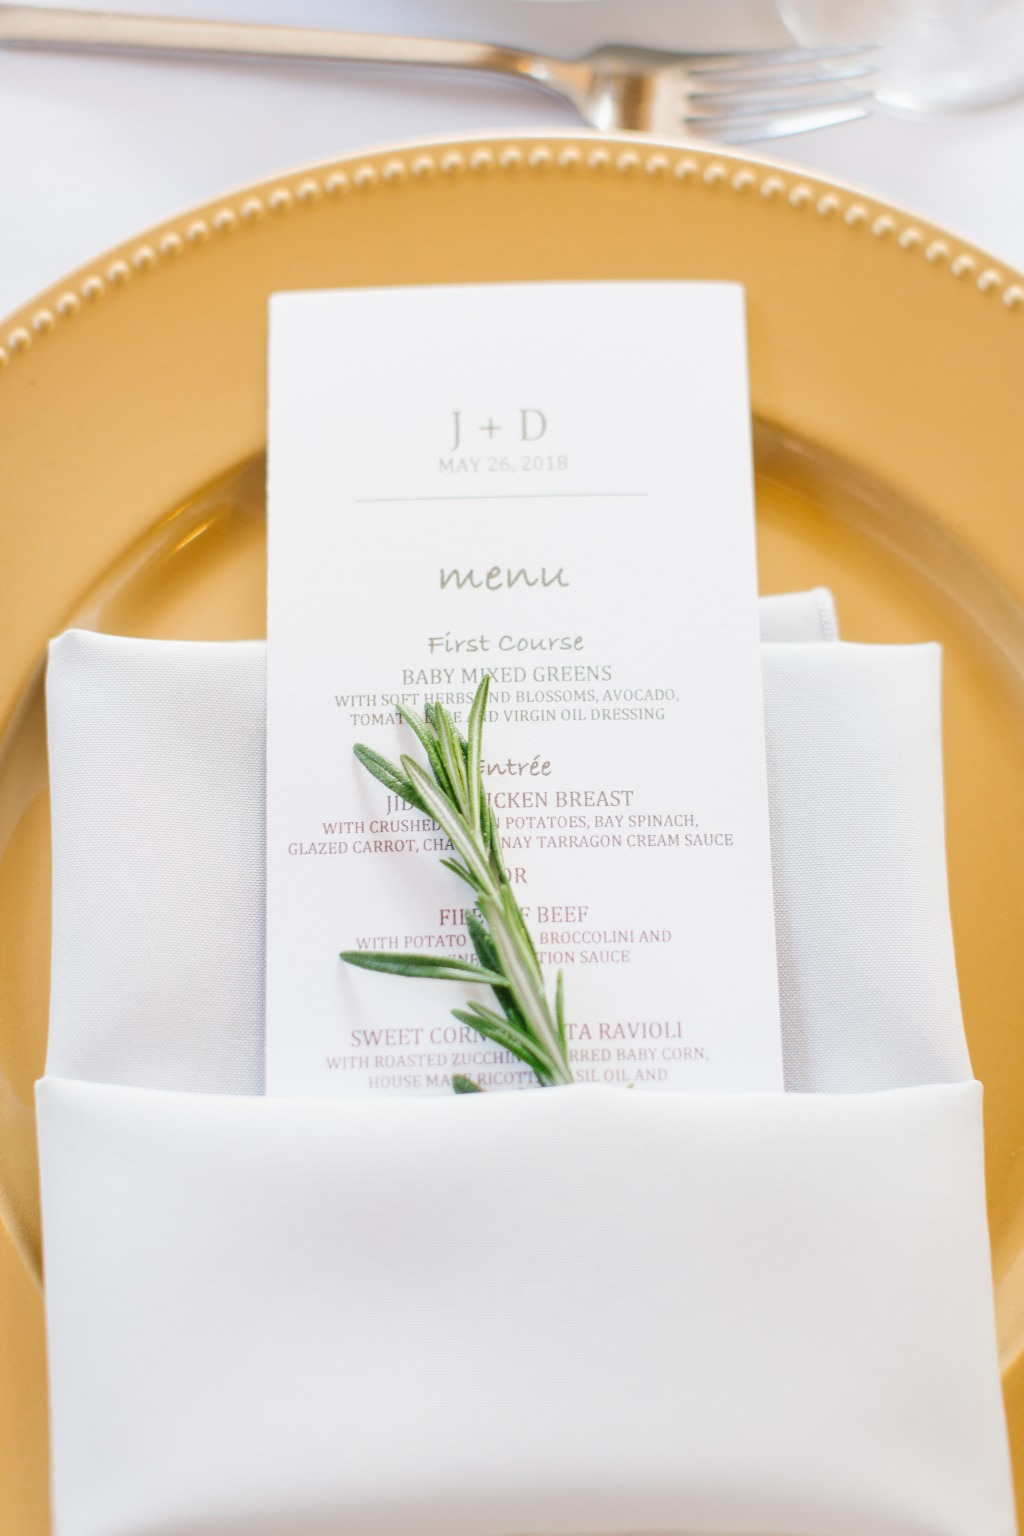 A little rosemary added a fresh vibe to these place settings!